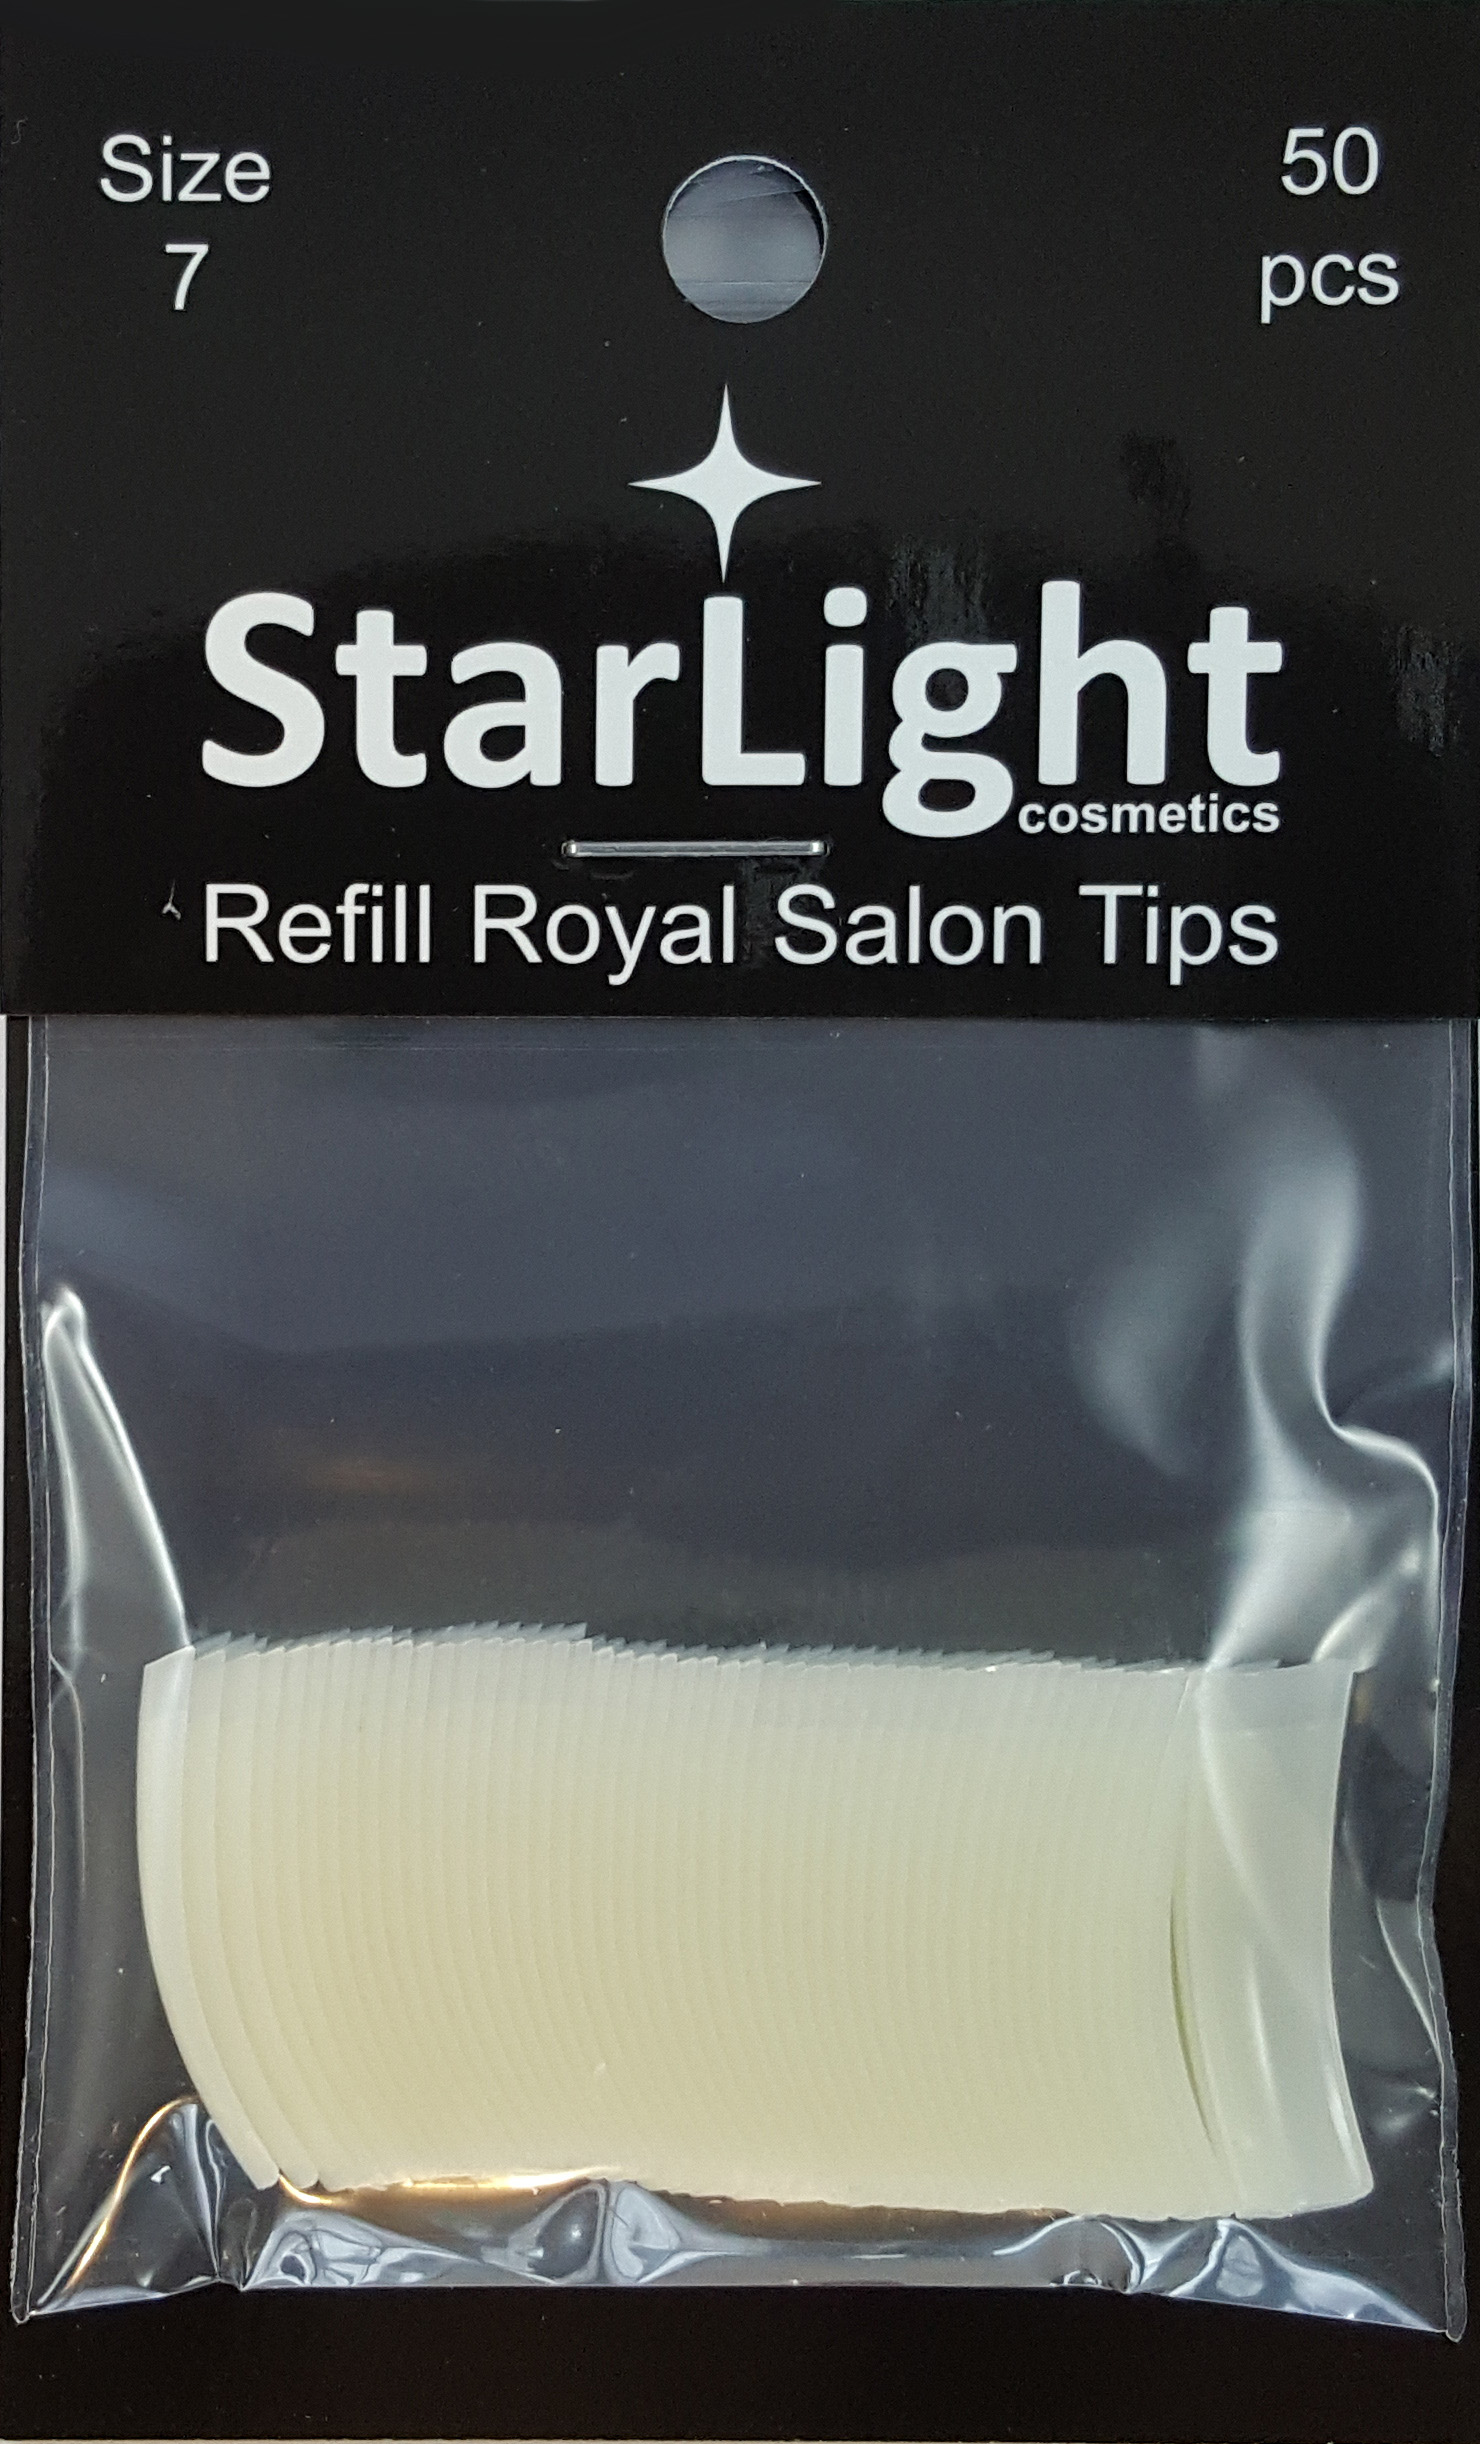 Naglar Royal Salon Tips Refill - 50 st Storlek 7